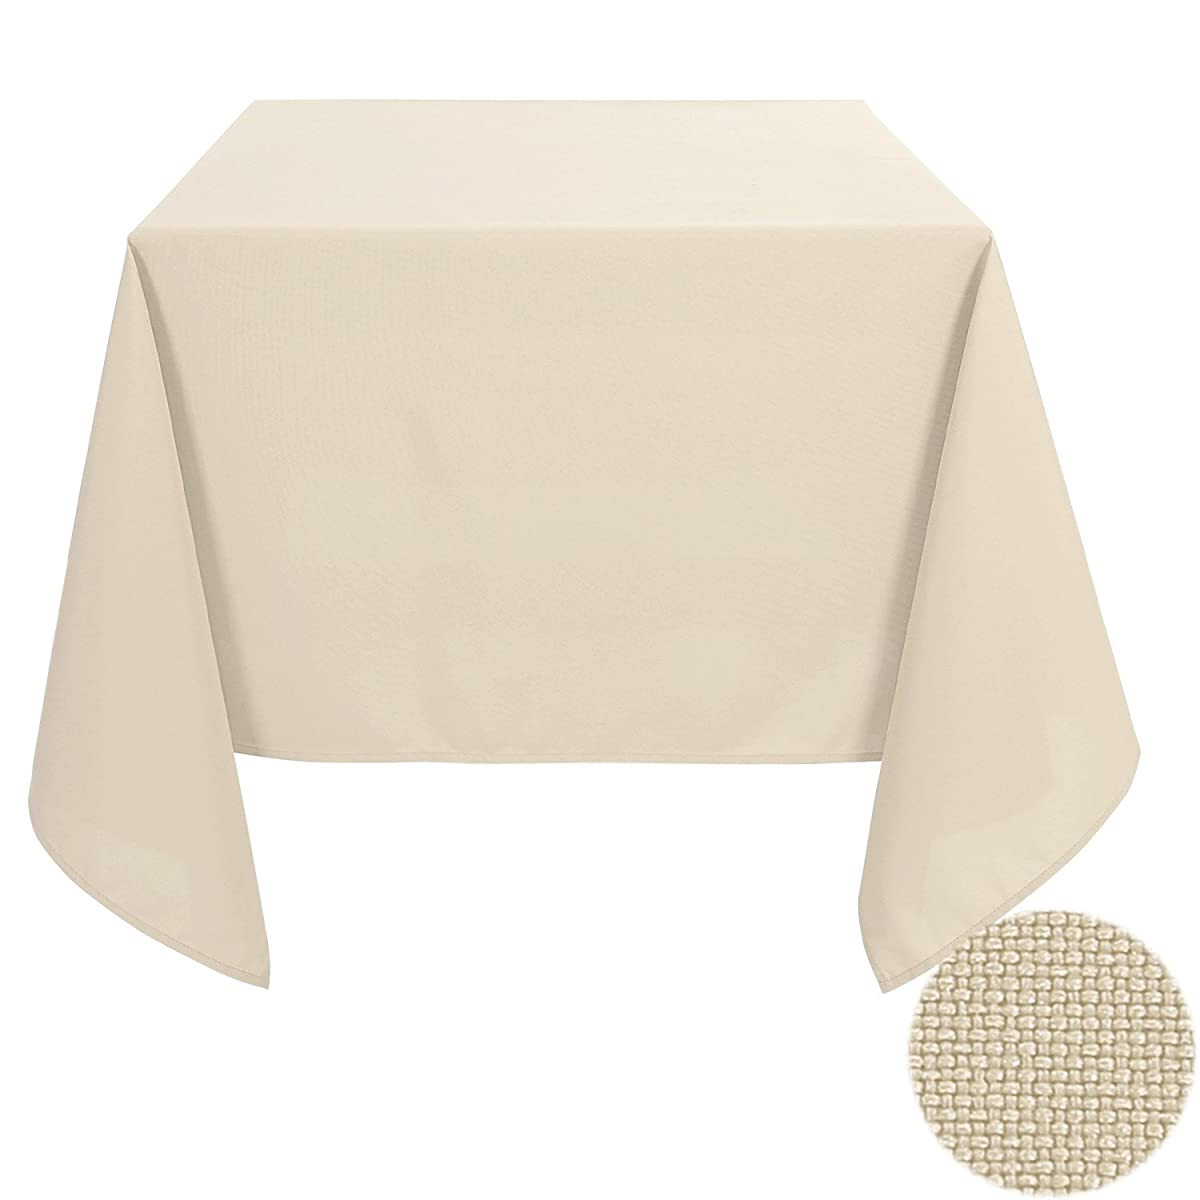 Deconovo Solid Oxford Square Waterproof Stain Free Tablecloth For Dining Room 70 by 70 Inch Butter Yellow